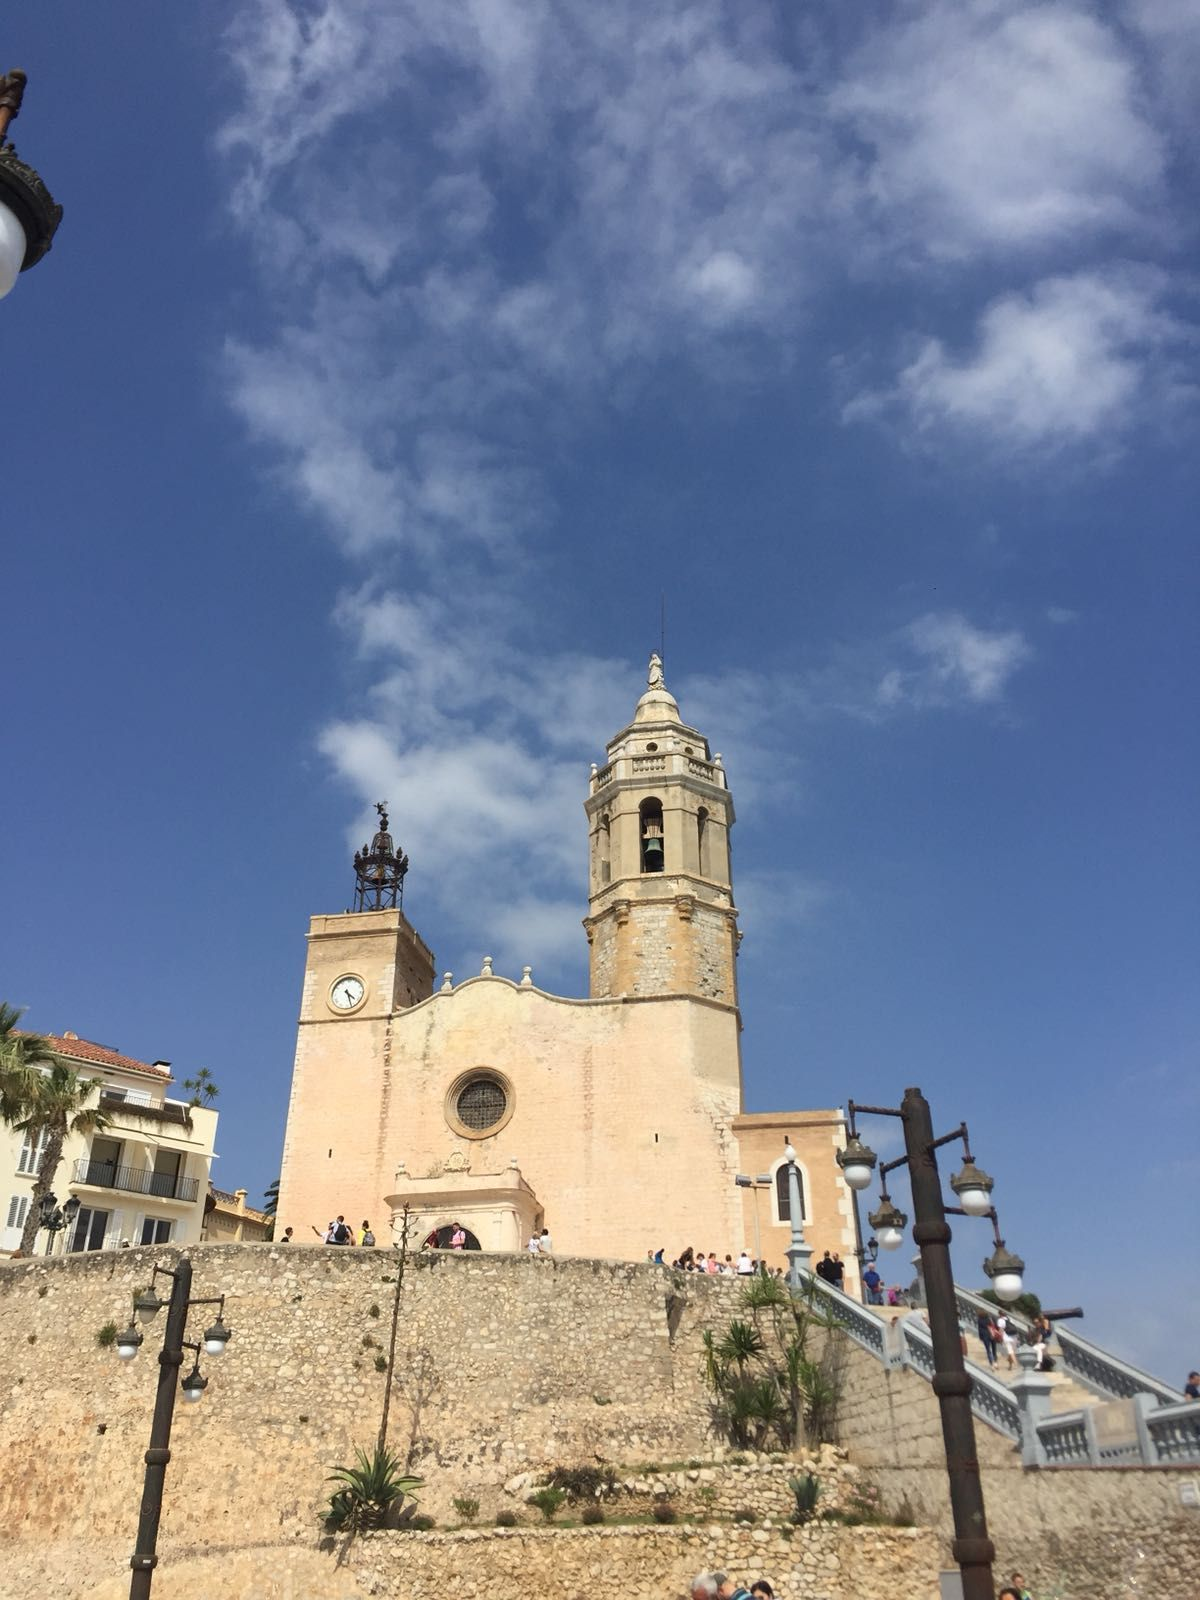 #Sitges is a coastal town in Spain's Catalonia region ...